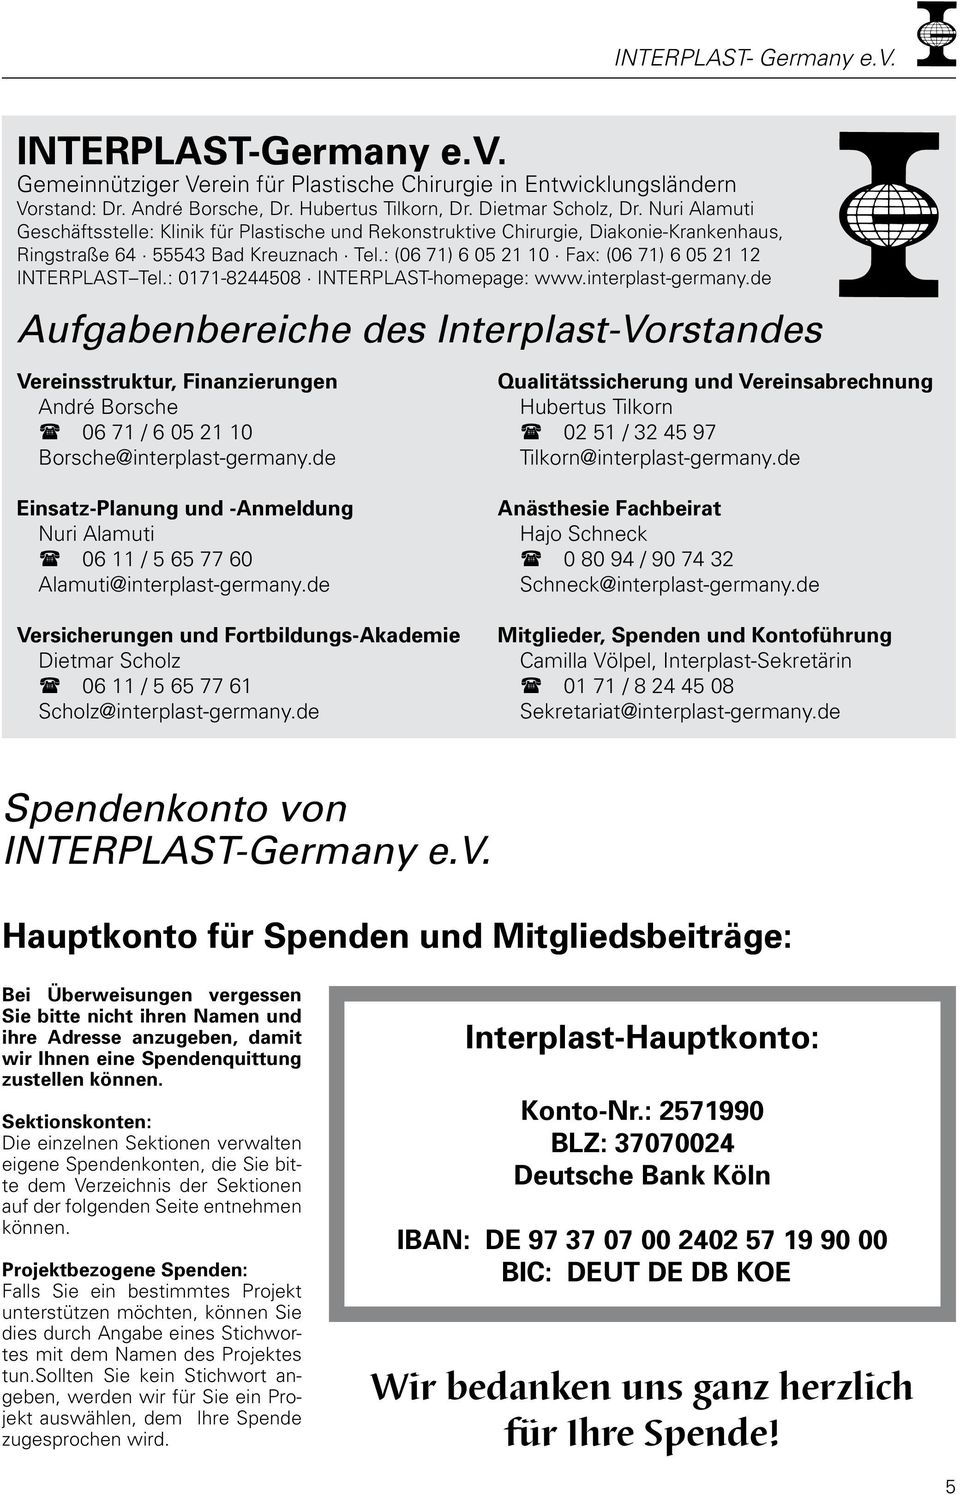 : (06 71) 6 05 21 10 Fax: (06 71) 6 05 21 12 INTERPLAST Tel.: 0171-8244508 INTERPLAST-homepage: www.interplast-germany.